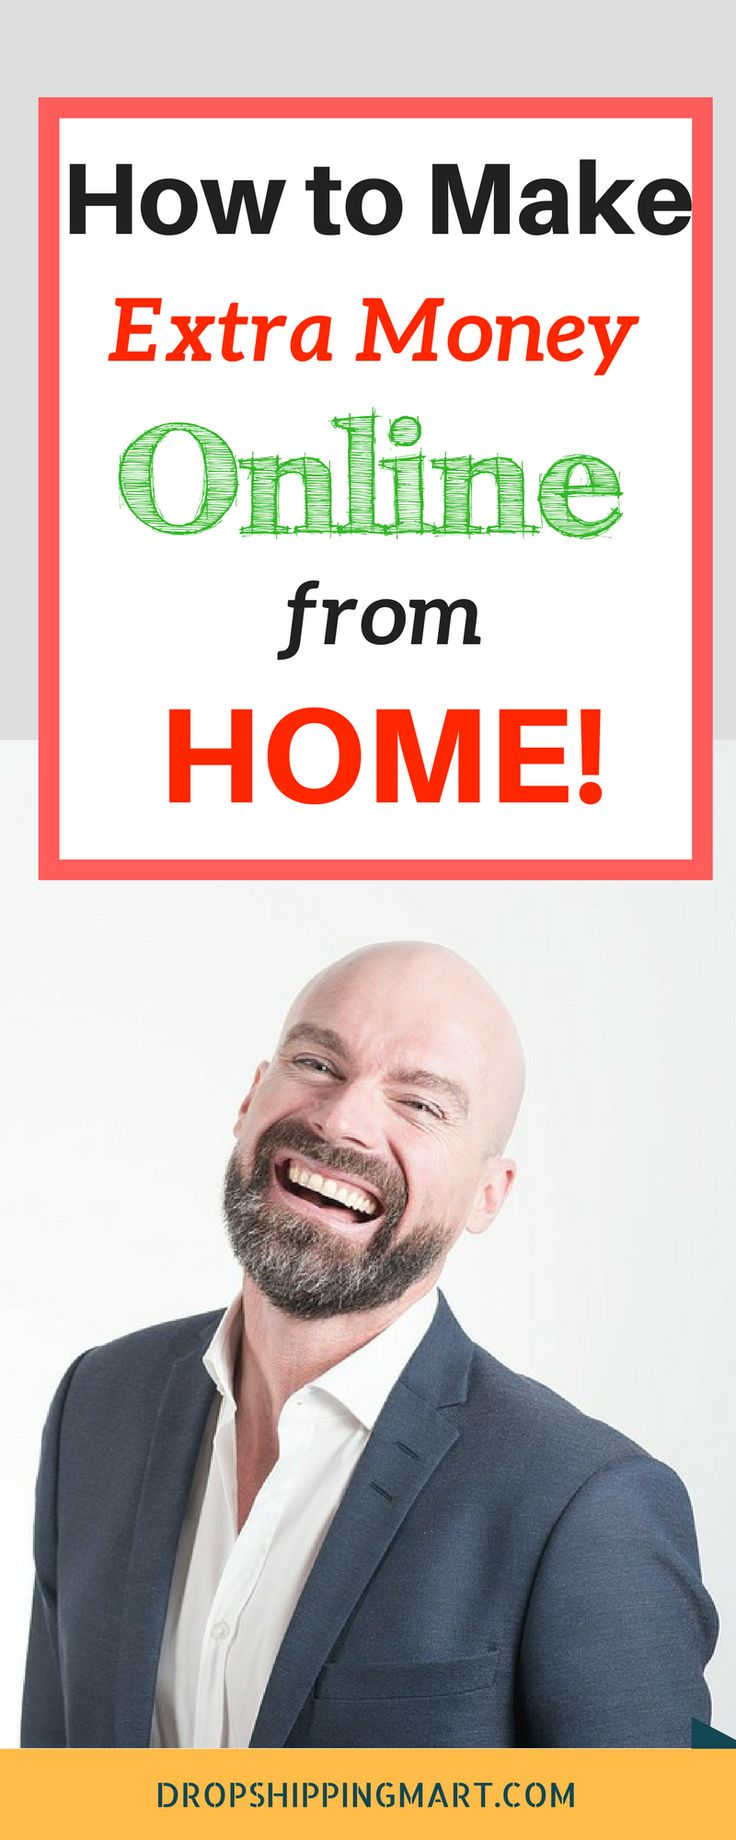 Image Result For The Best Home Based Business Ideas For Stay At Home Moms